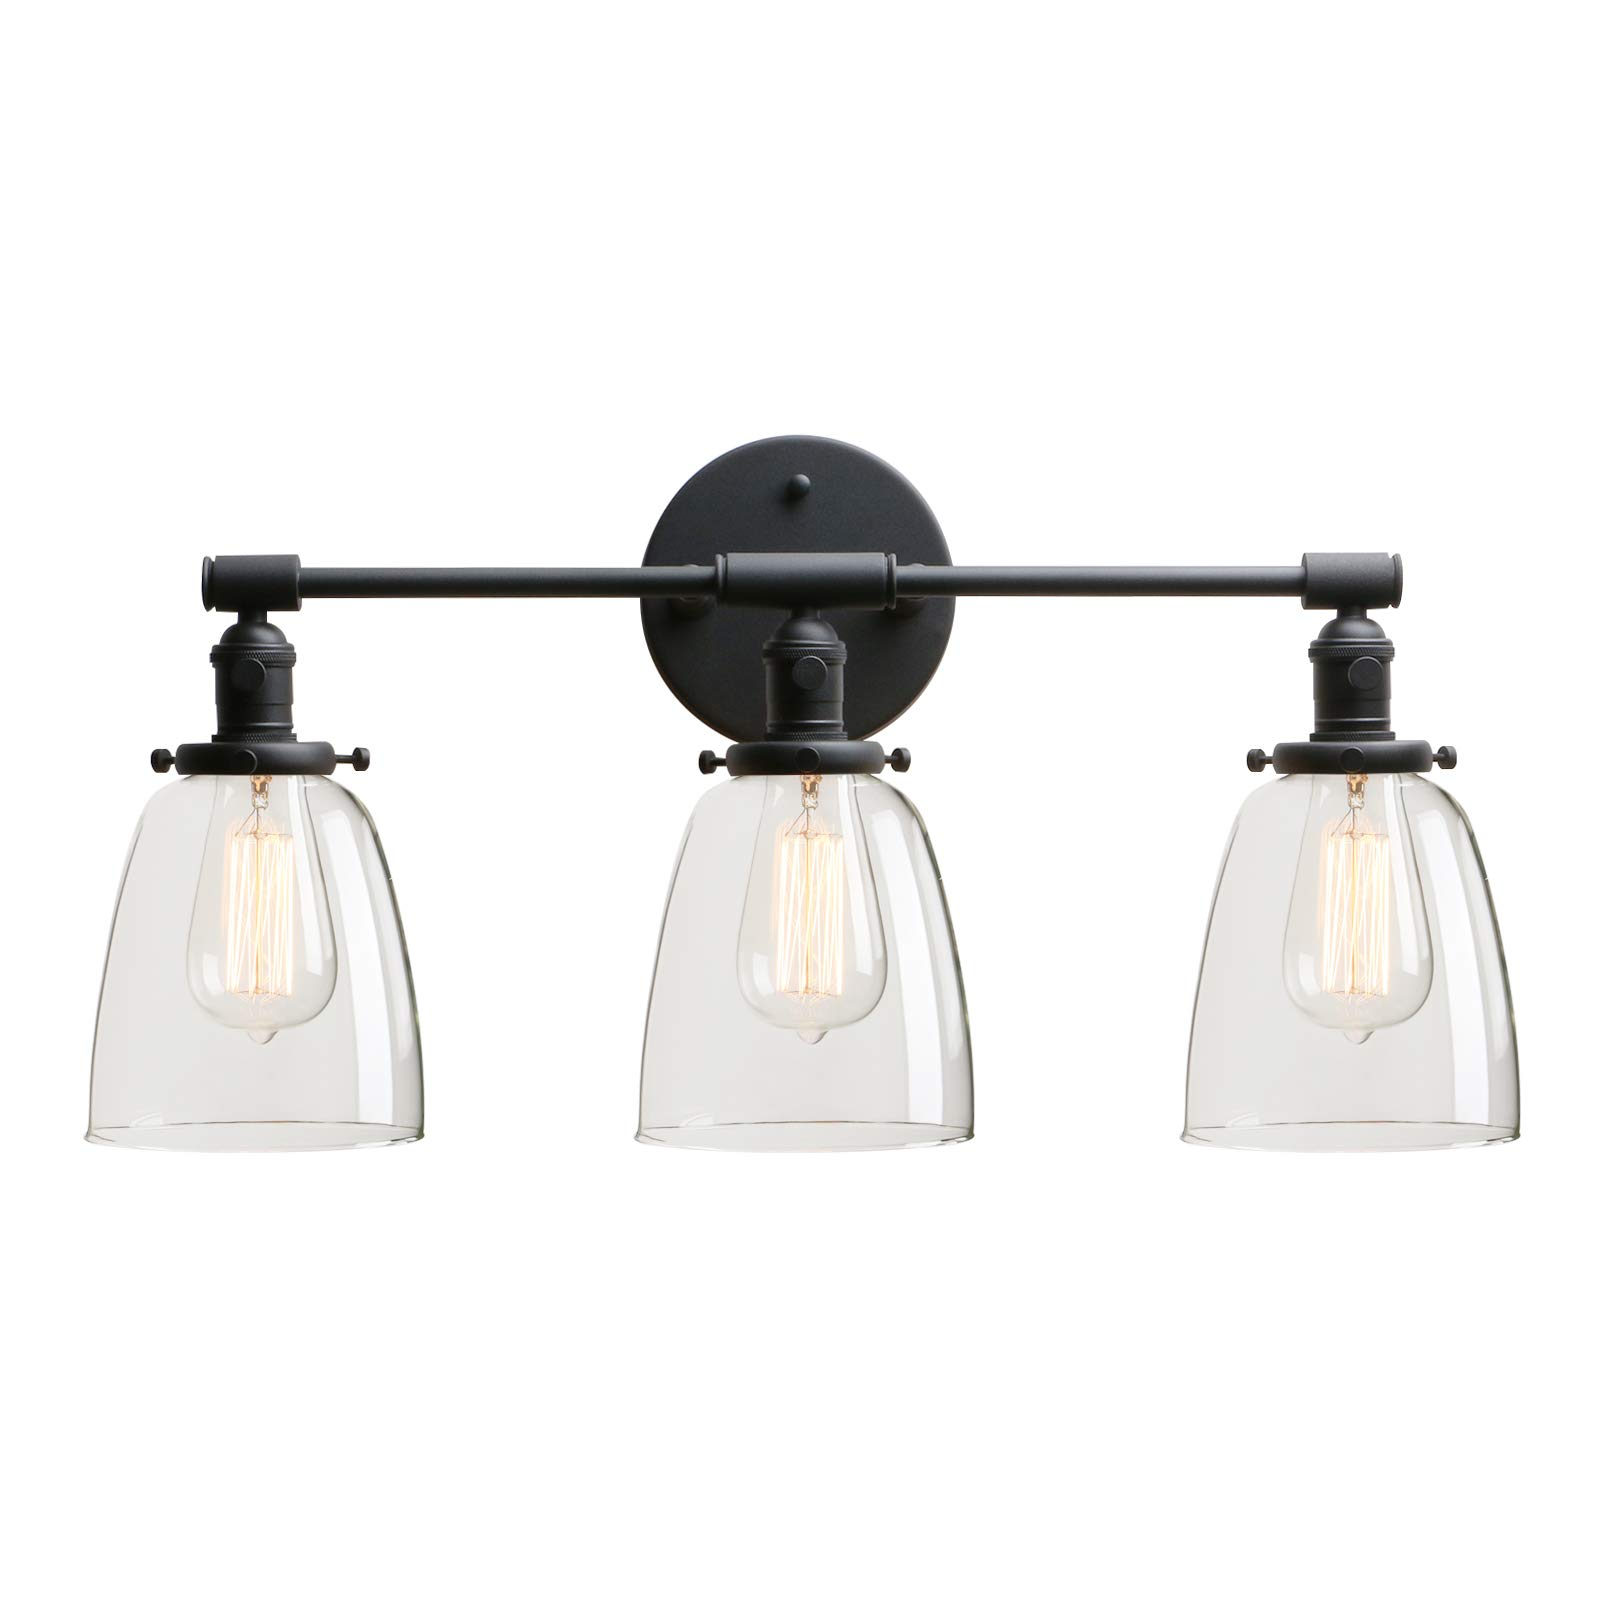 Permo Vintage Industrial Antique Three-Light Wall Sconces with Oval Cone Clear Glass Shade (Black)